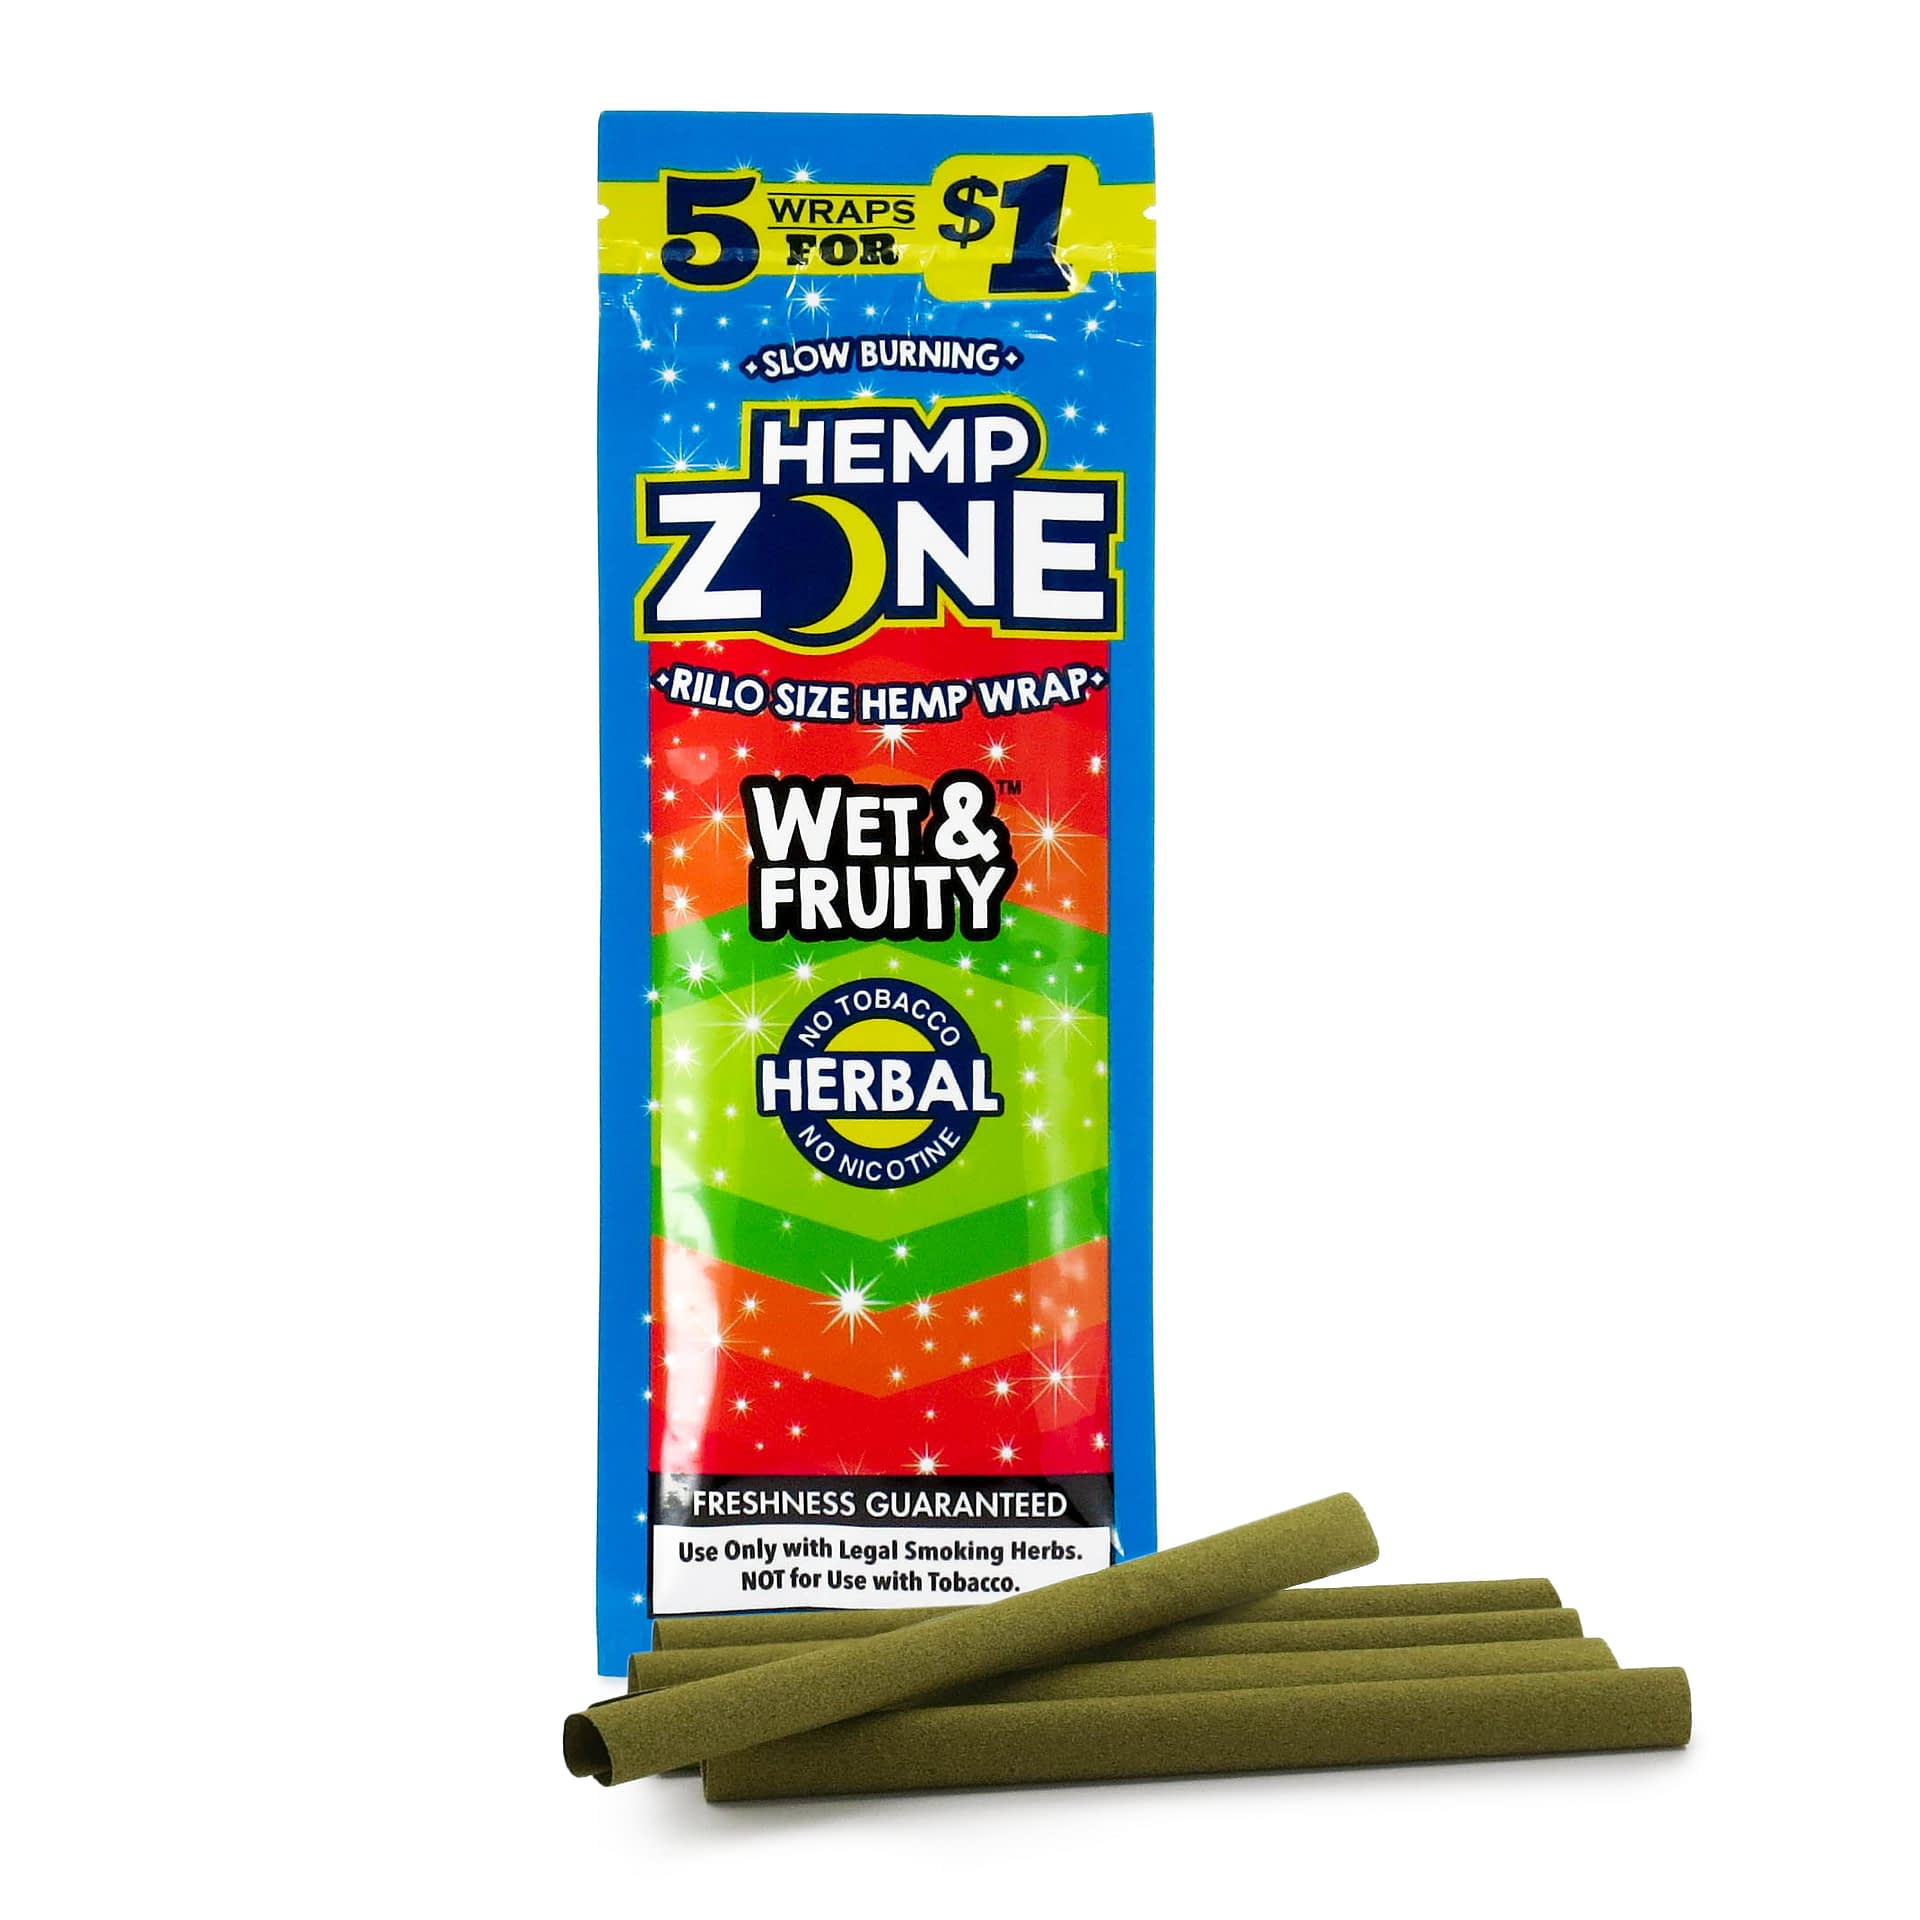 Hemp Zone Hemp Wraps